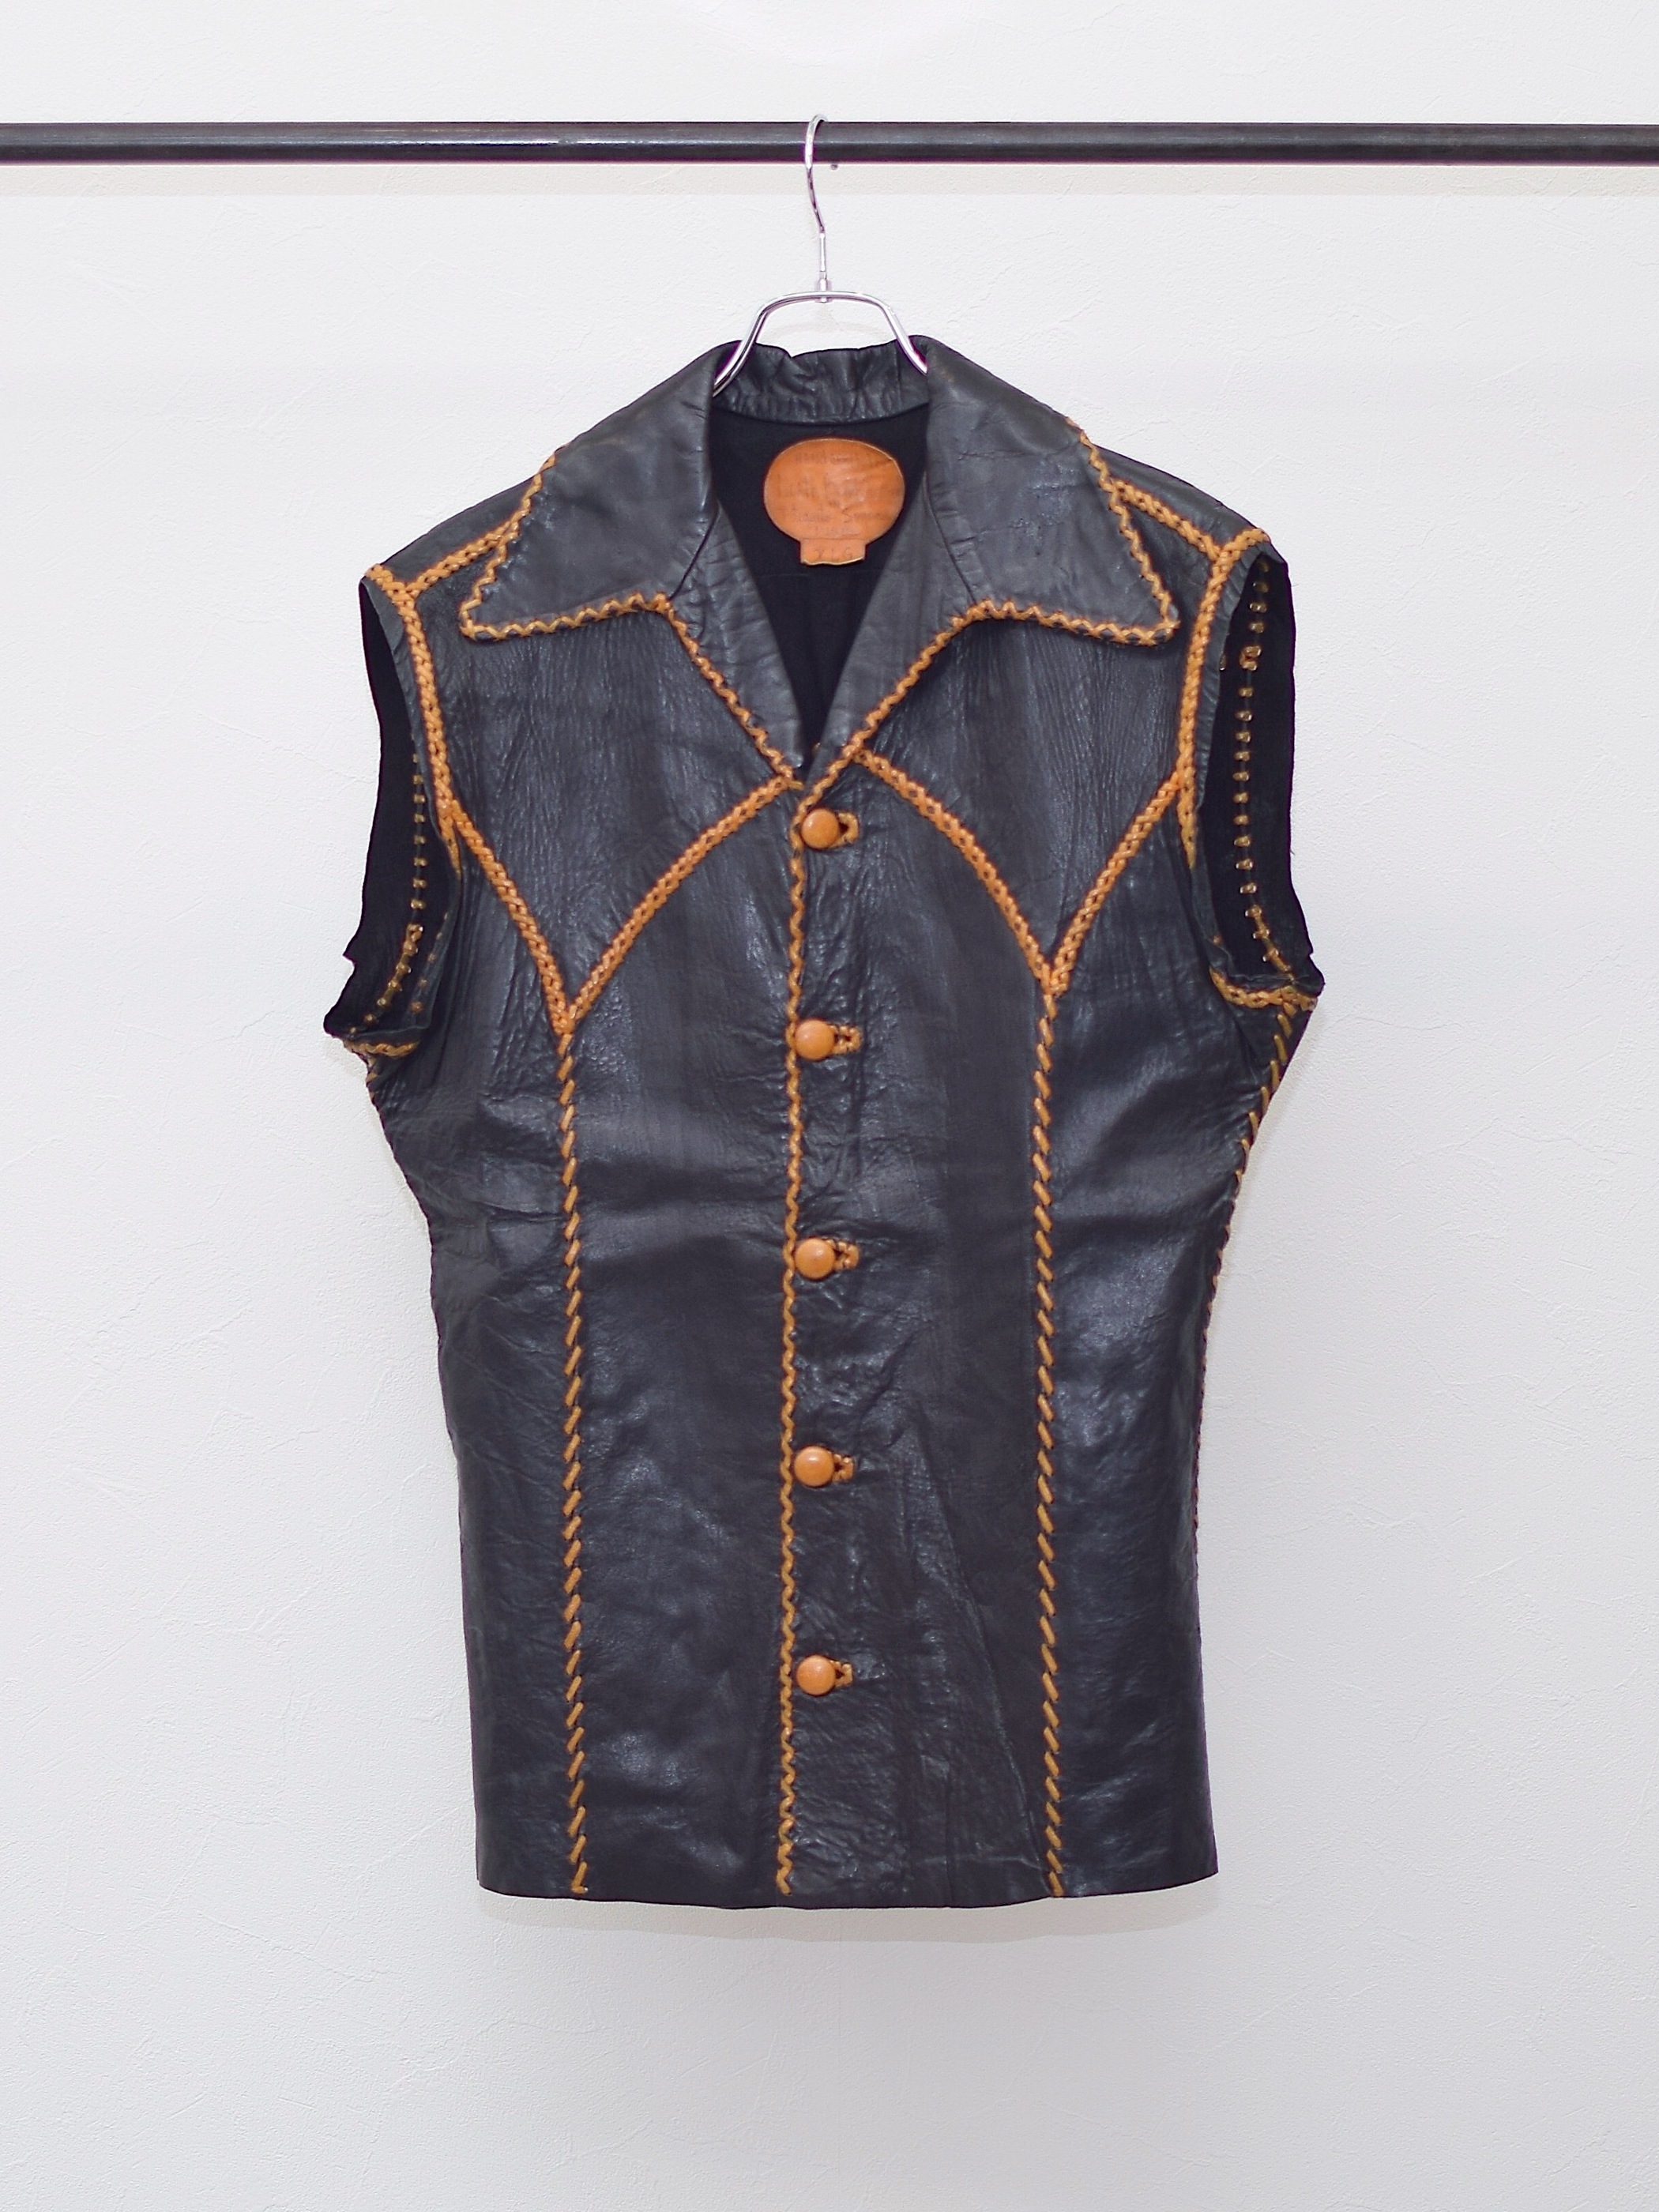 Vintage 70's【North Beach Leather】Leather Vest